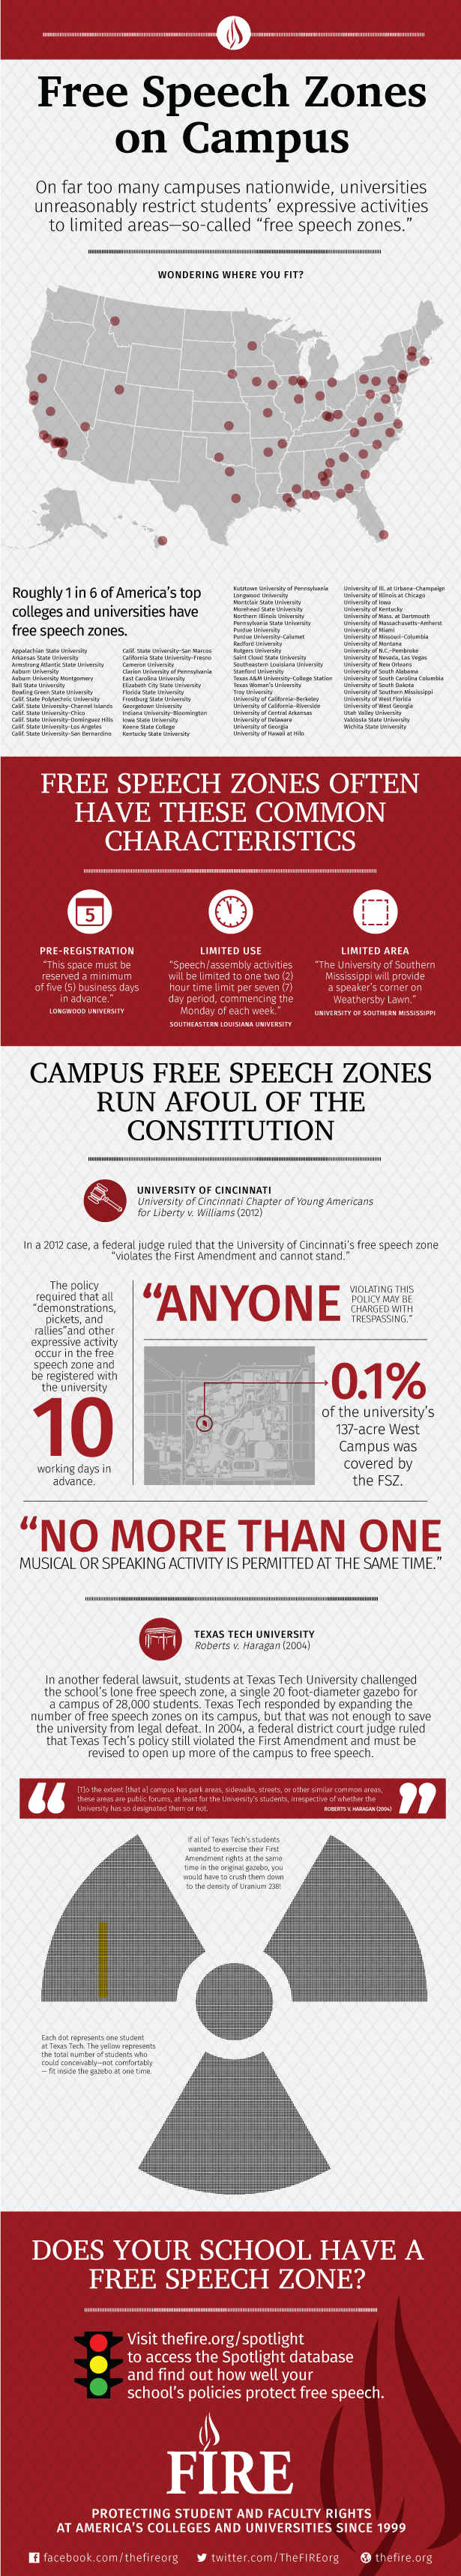 Free-speech-zone-infographic